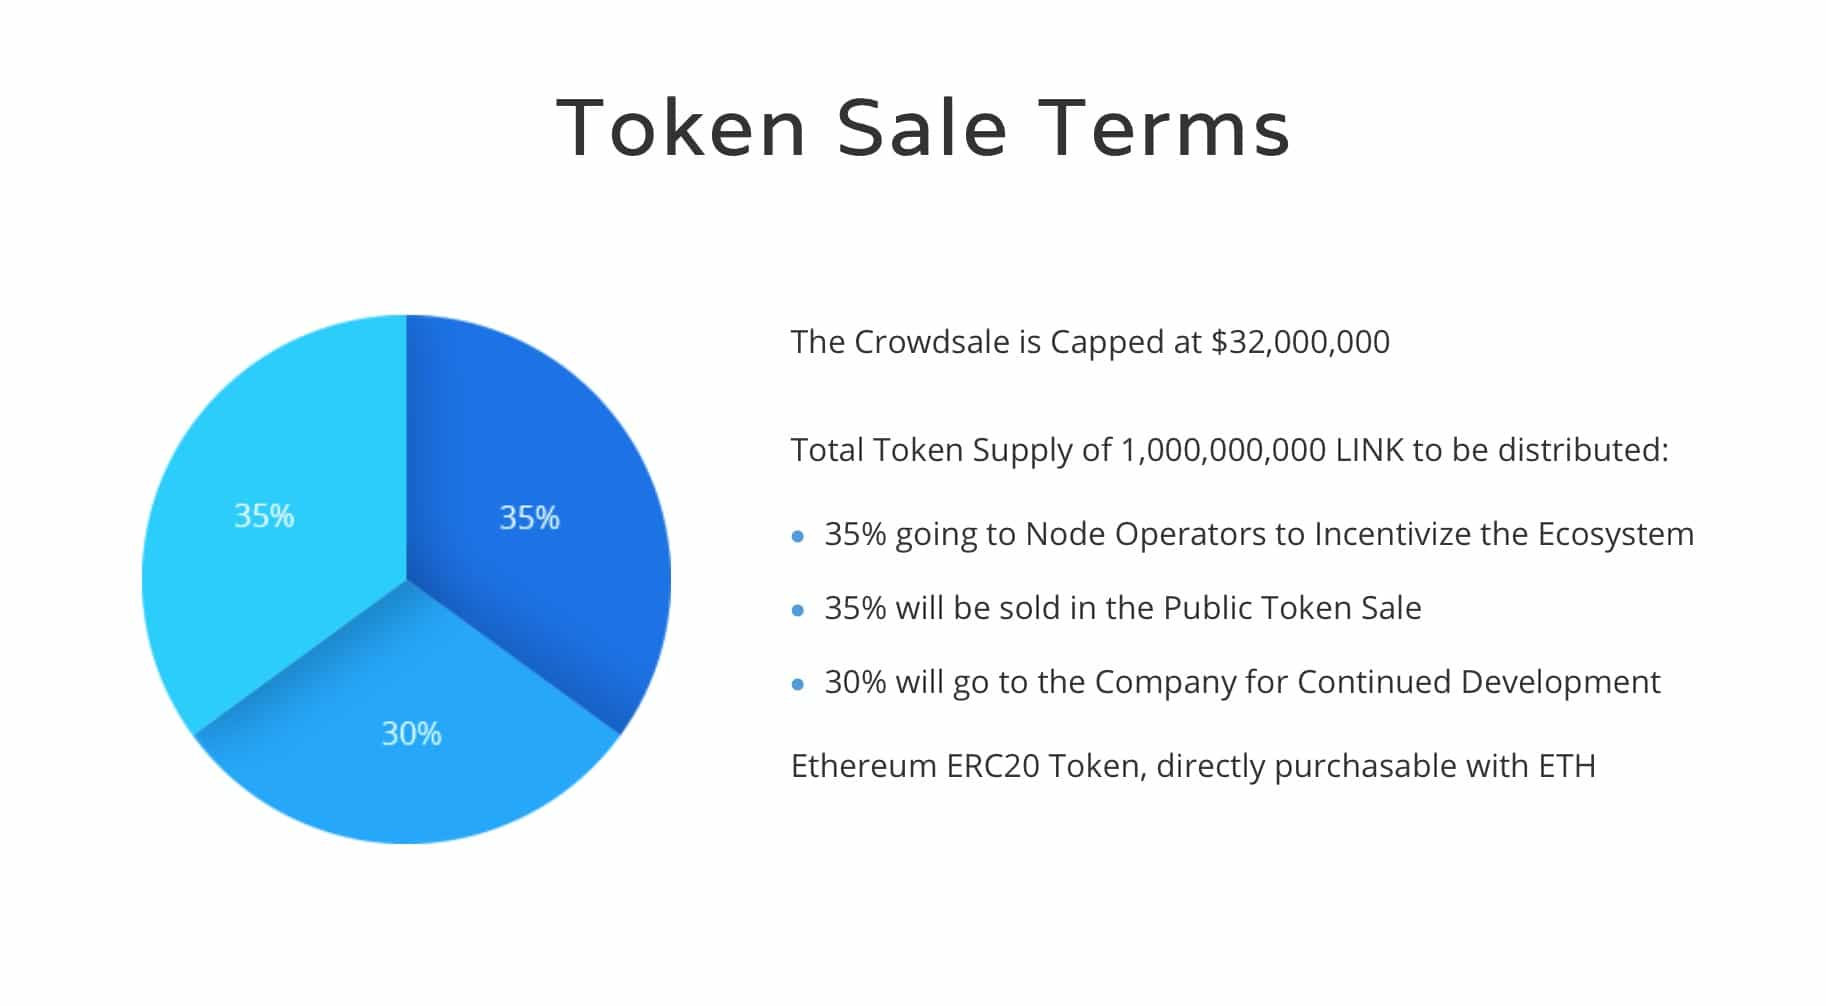 token sale terms chainlink pie chart